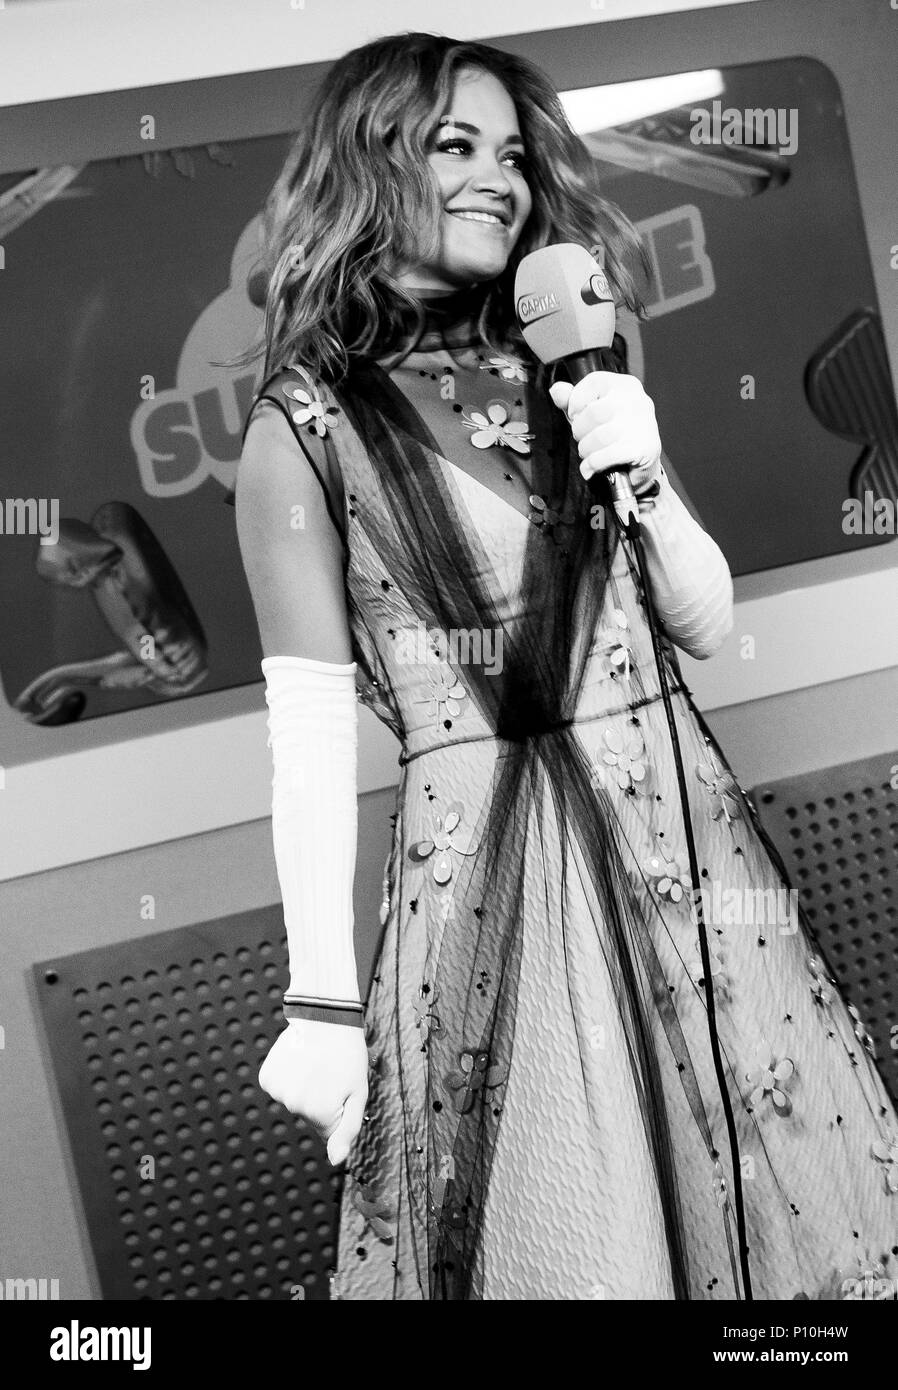 Rita Ora in the on air studio during Capital's Summertime Ball with Vodafone at Wembley Stadium, London. PRESS ASSOCIATION Photo. This summer's hottest artists performed live for 80,000 Capital listeners at Wembley Stadium at the UK's biggest summer party. Performers included Camila Cabello, Shawn Mendes, Rita Ora, Charlie Puth, Jess Glyne, Craig David, Anne-Marie, Rudimental, Sean Paul, Clean Bandit, James Arthur, Sigala, Years & Years, Jax Jones, Raye, Jonas Blue, Mabel, Stefflon Don, Yungen and G-Eazy. Picture date: Saturday June 9, 2018. Photo credit should read: Lauren Hurley/PA Wire - Stock Image